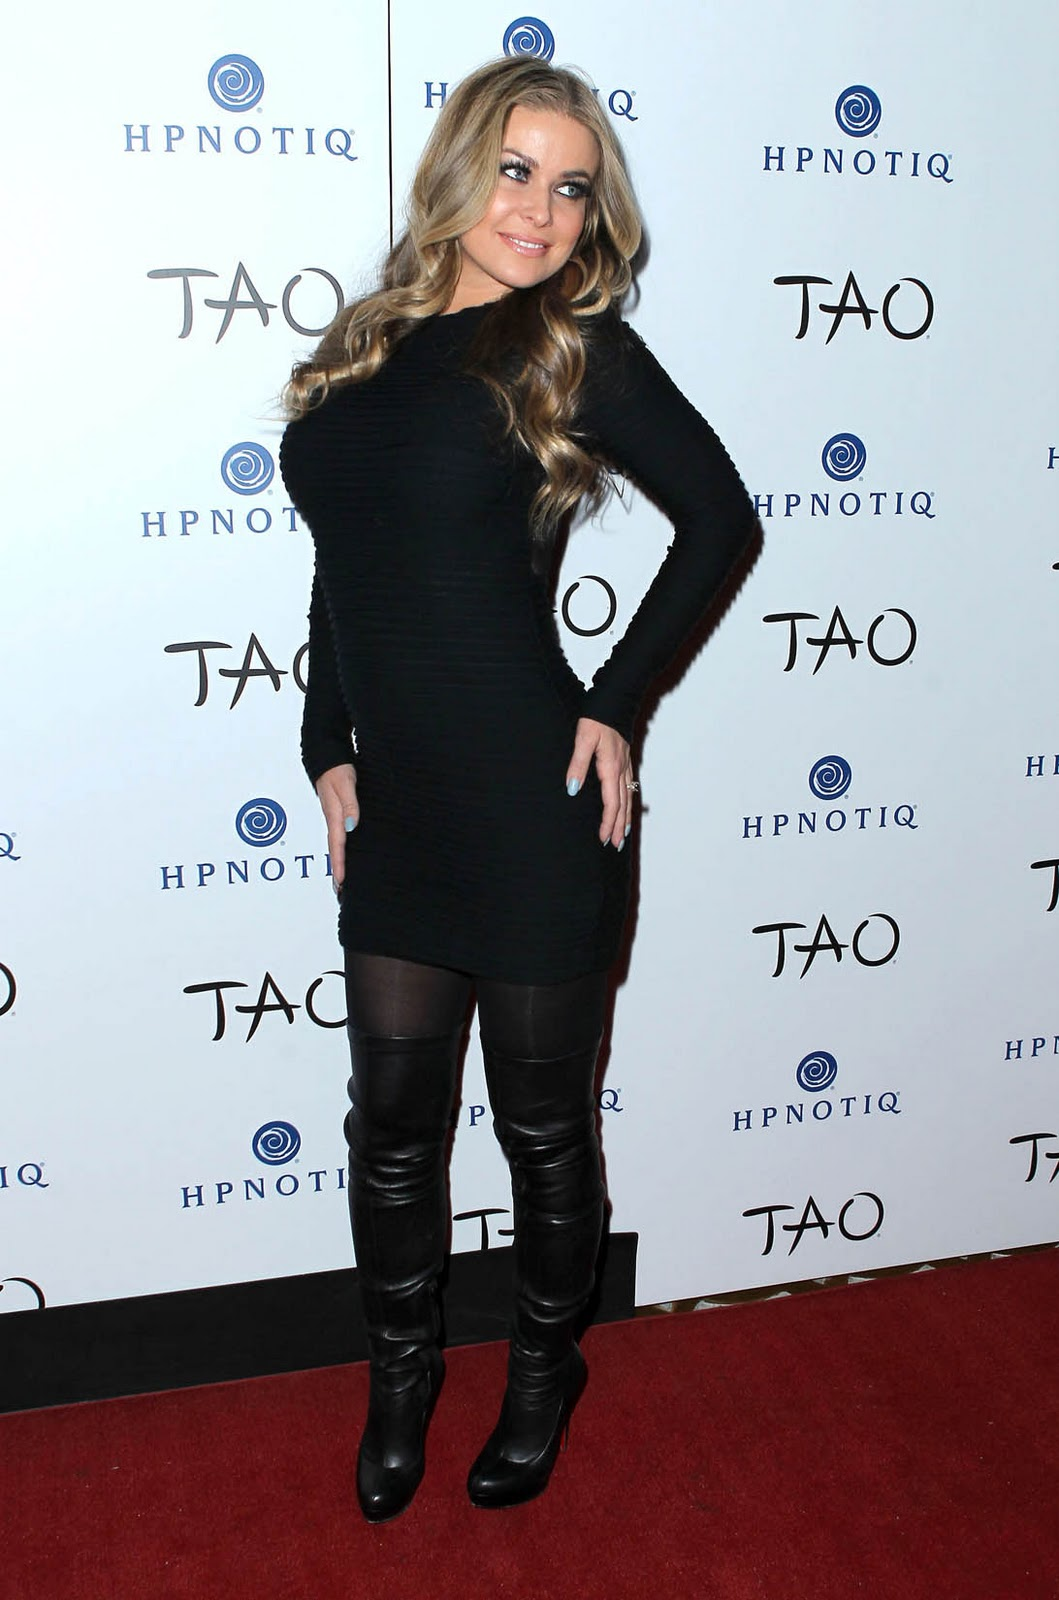 Carmen Electra flashes lingerie beneath ultra-sheer LBD in